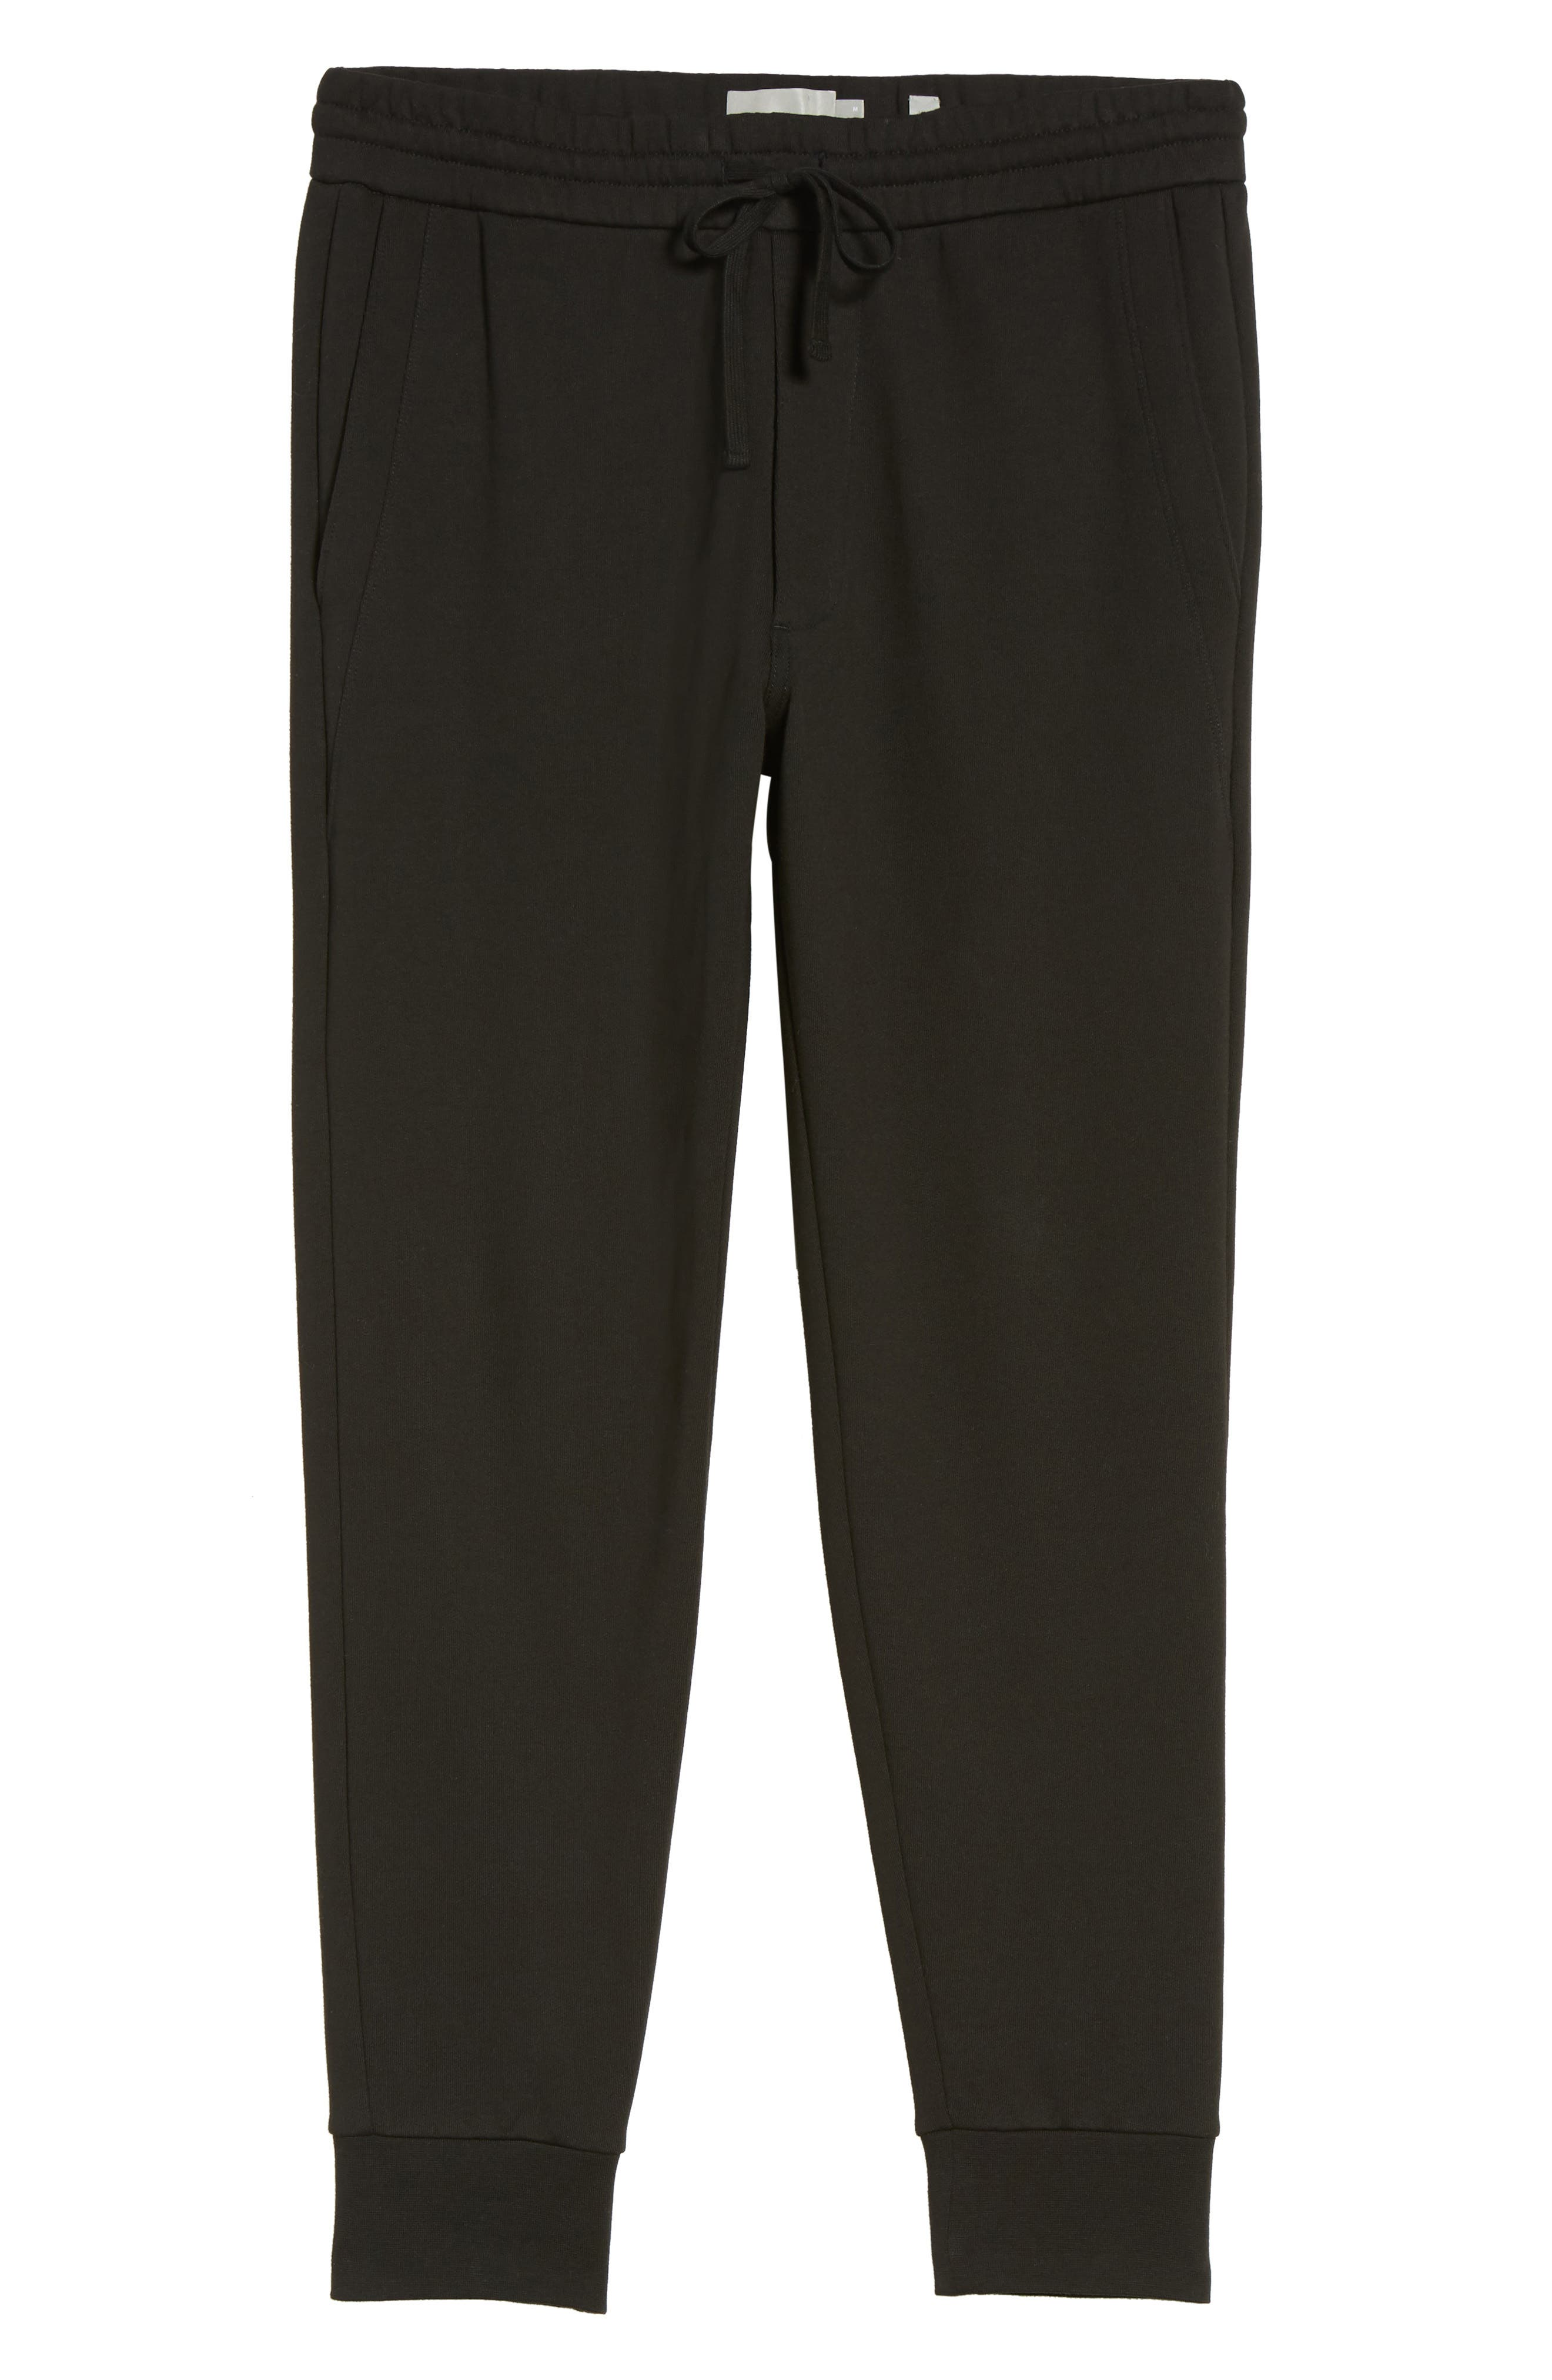 Cotton Sweatpants,                             Alternate thumbnail 6, color,                             Black